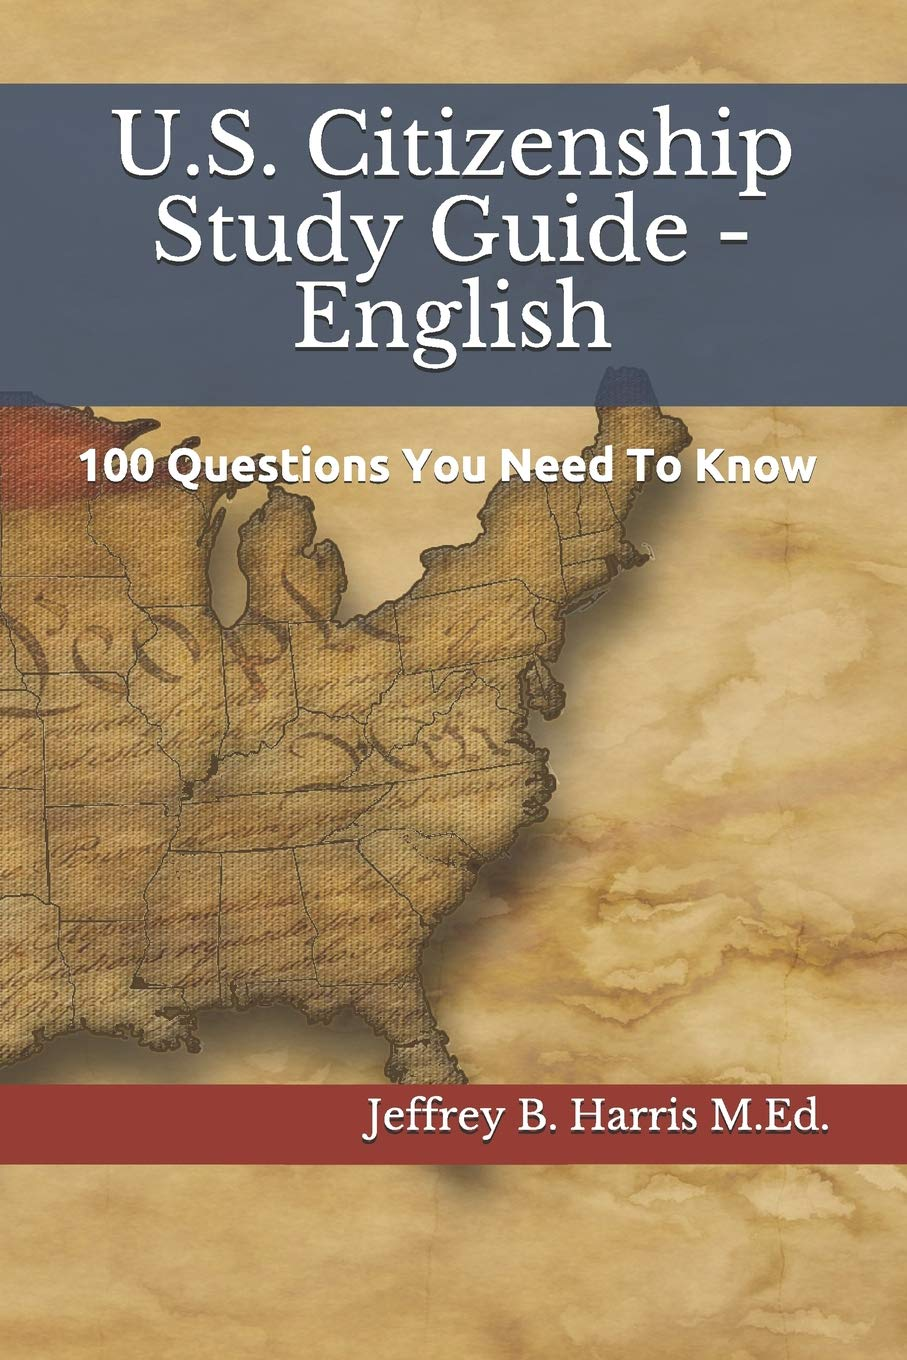 U.S. Citizenship Study Guide   English  100 Questions You Need To Know